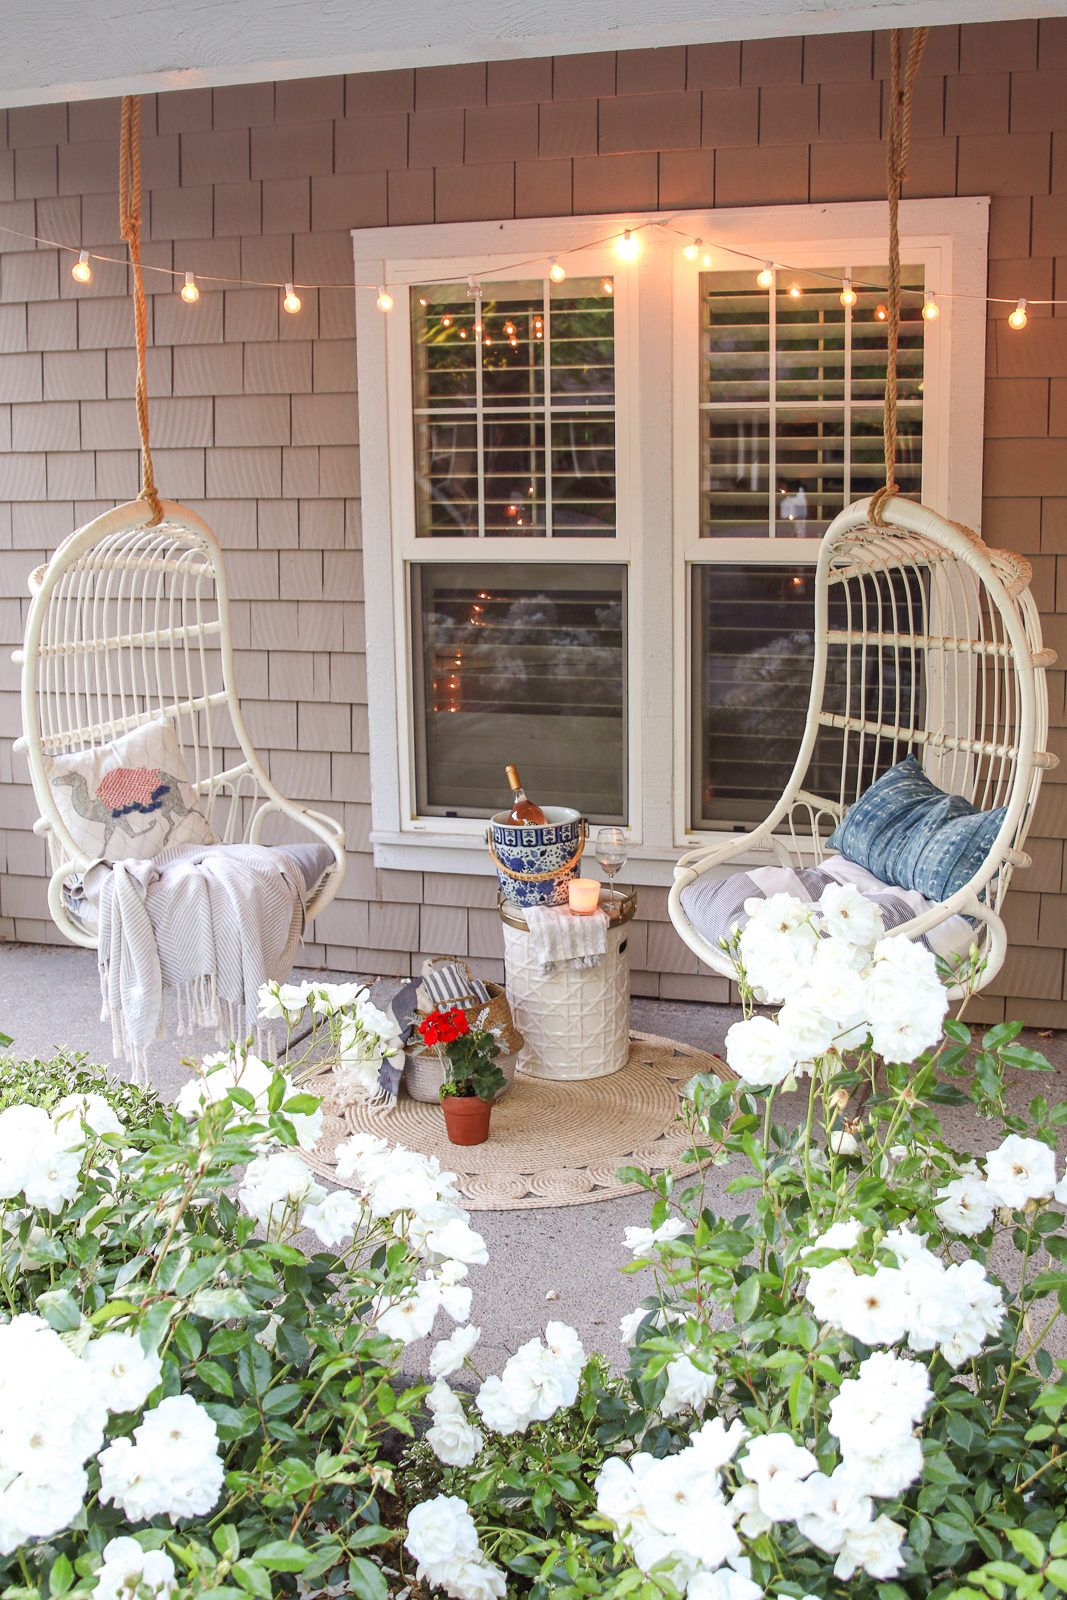 A trad modern home with girly touches and a closet to die